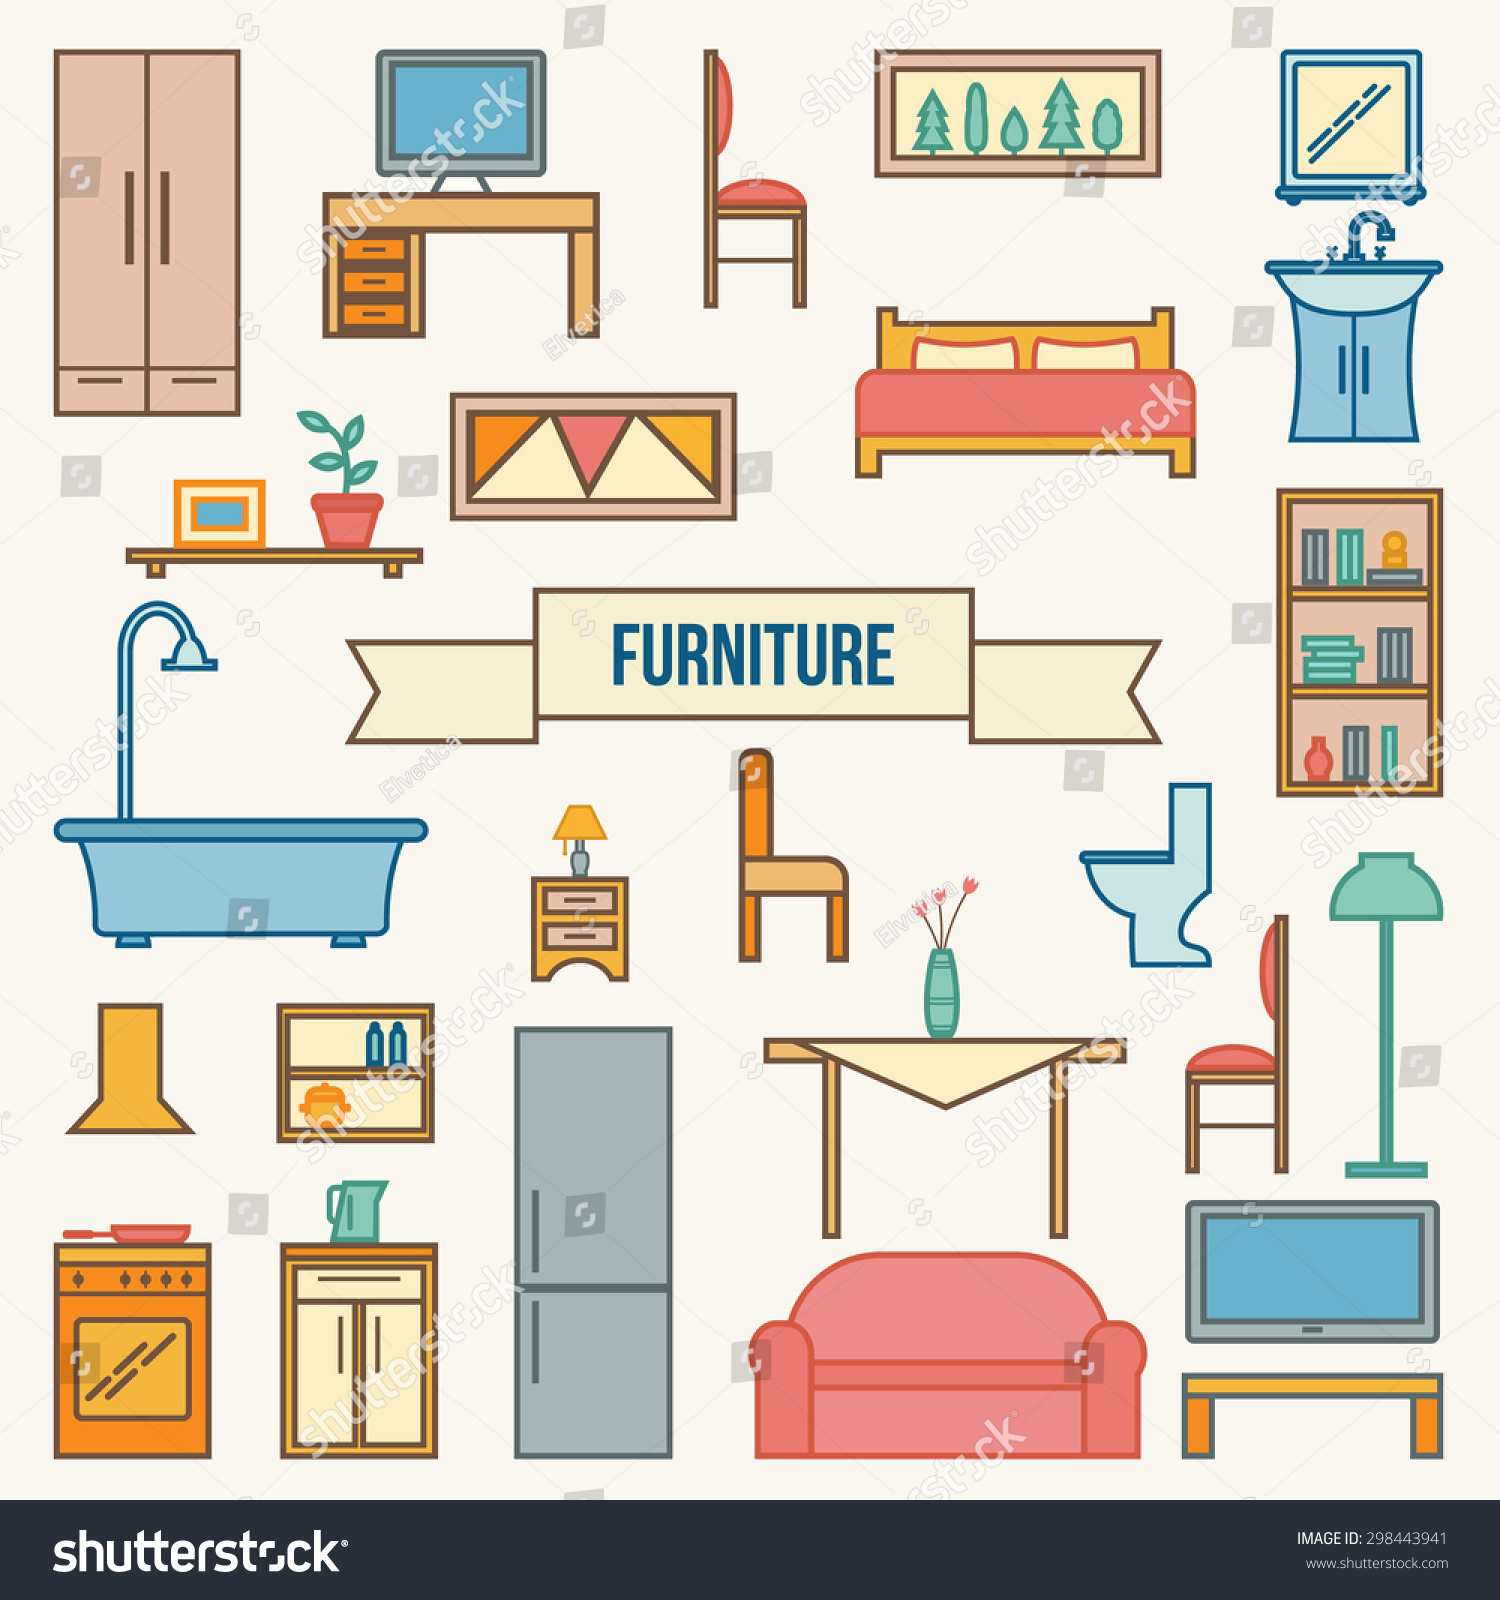 House outline with rooms - Furniture Set For Rooms Of House Outline Style Vector Illustration